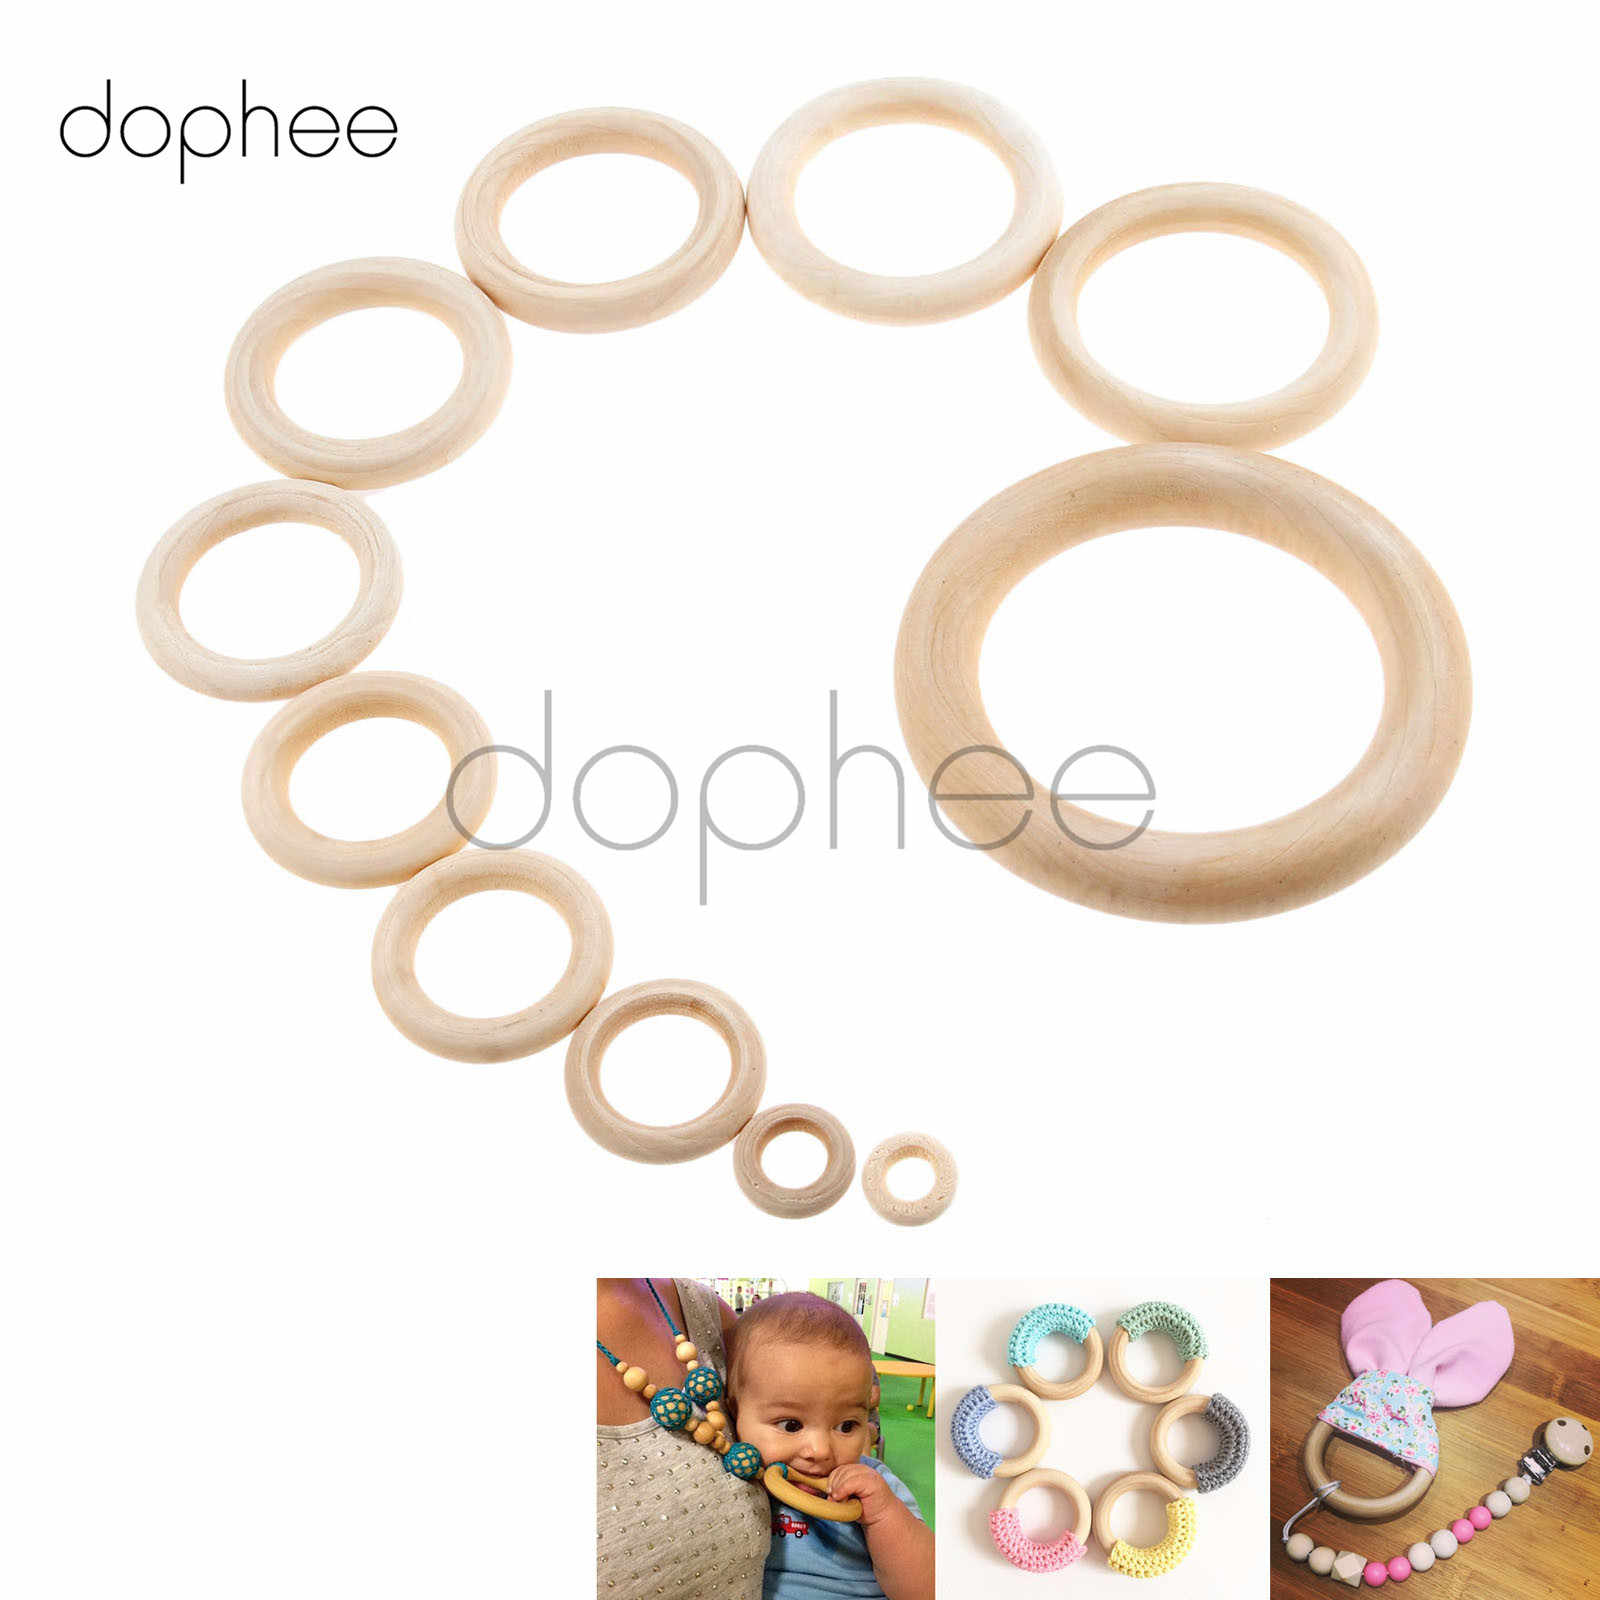 dophee 1-100pcs Wooden Rings 15mm-100mm Unfinished Hoops For Necklace Jewelry Making Teething Toys Pacifier Holders